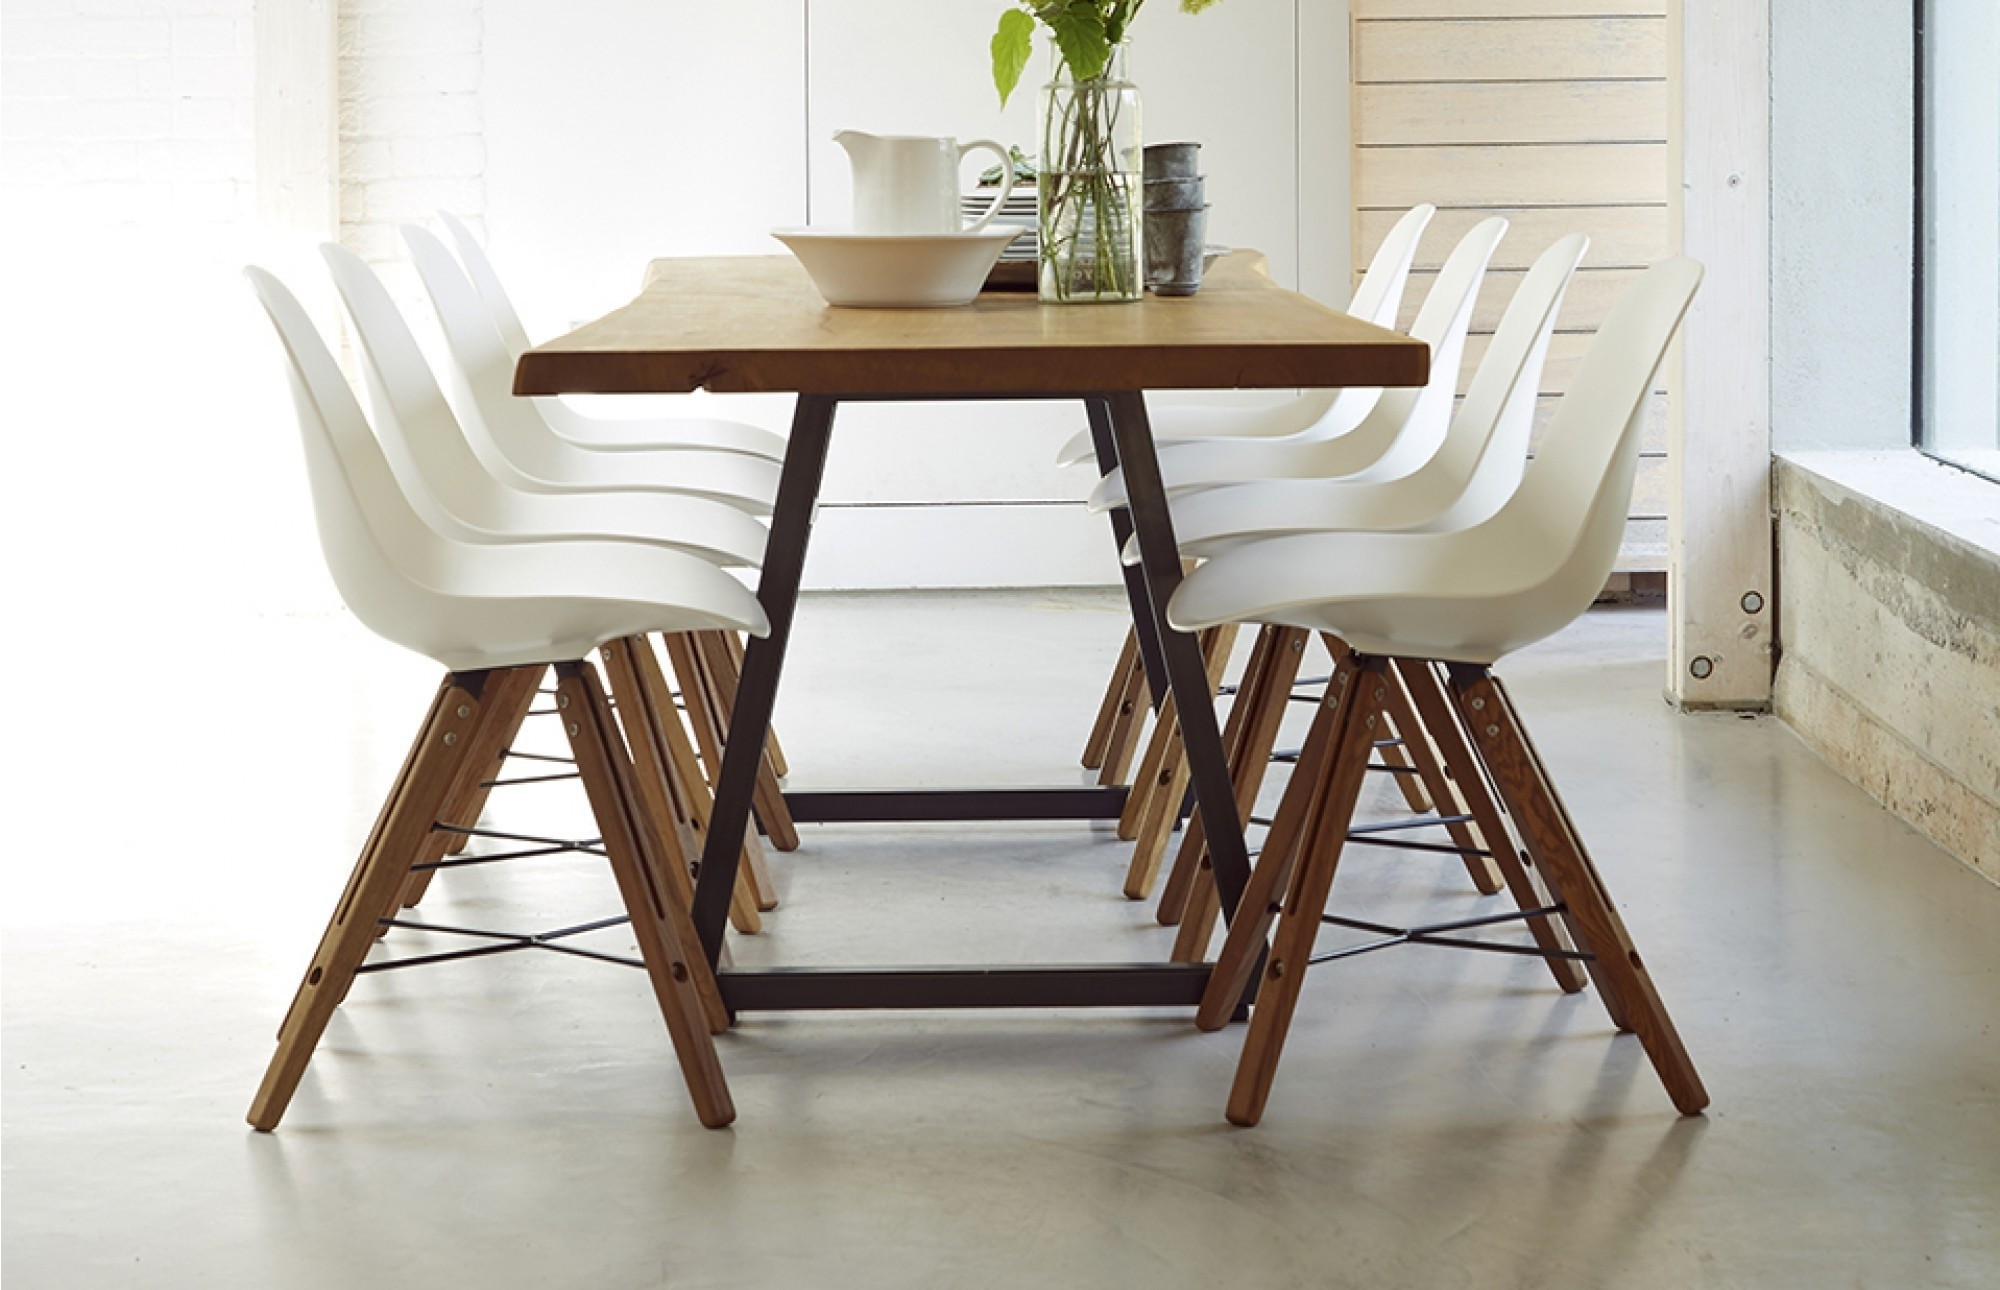 Dining Tables And 8 Chairs Sets throughout Recent Dining Table Sets 8 Chairs Elegant Luxury Contemporary Tables And 22